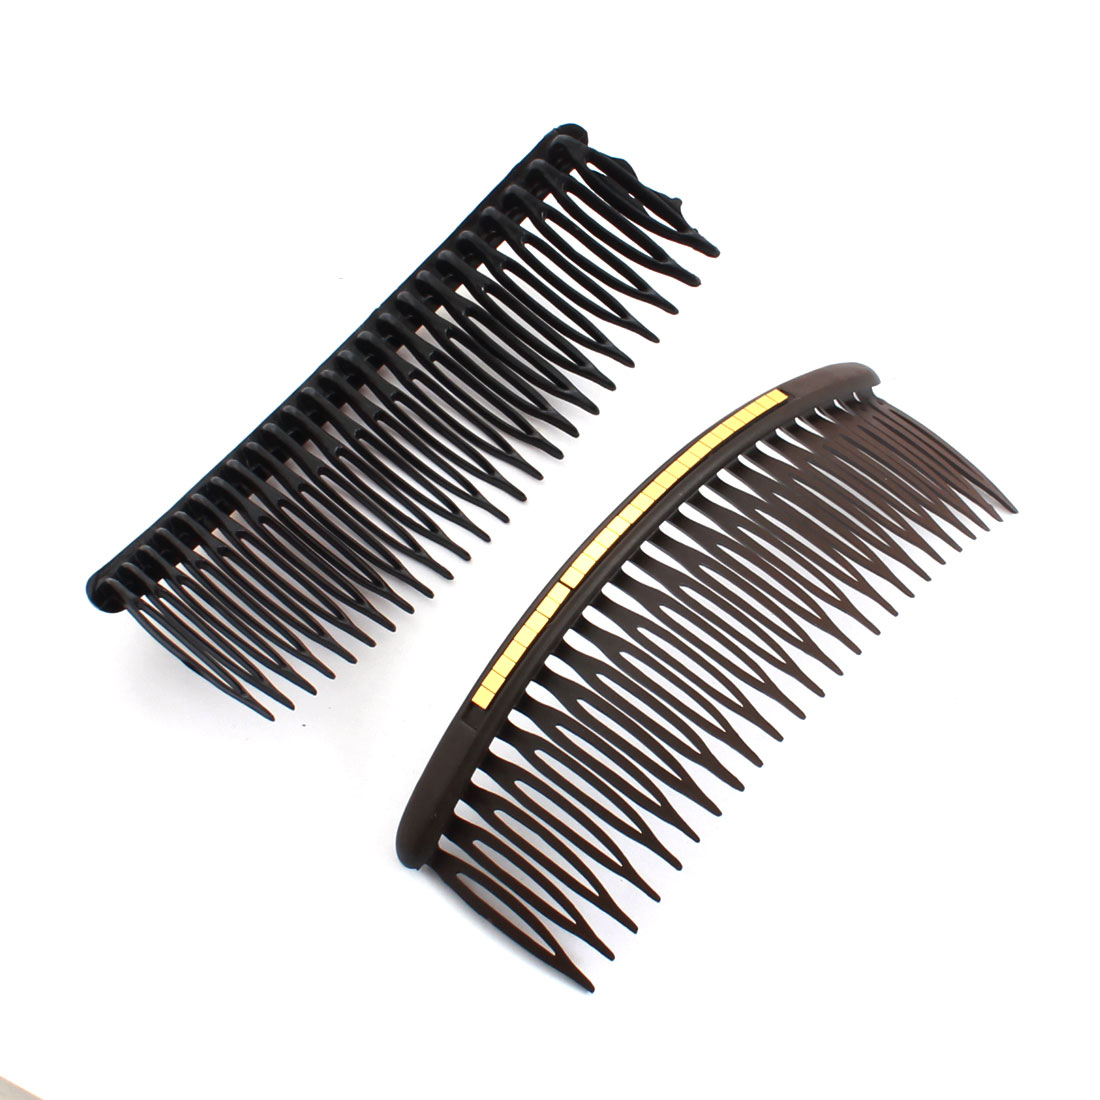 2 Pcs Dark Brown Glittery Gold Tone Square Sheet Decor Plastic Comb Hair Clip for Lady